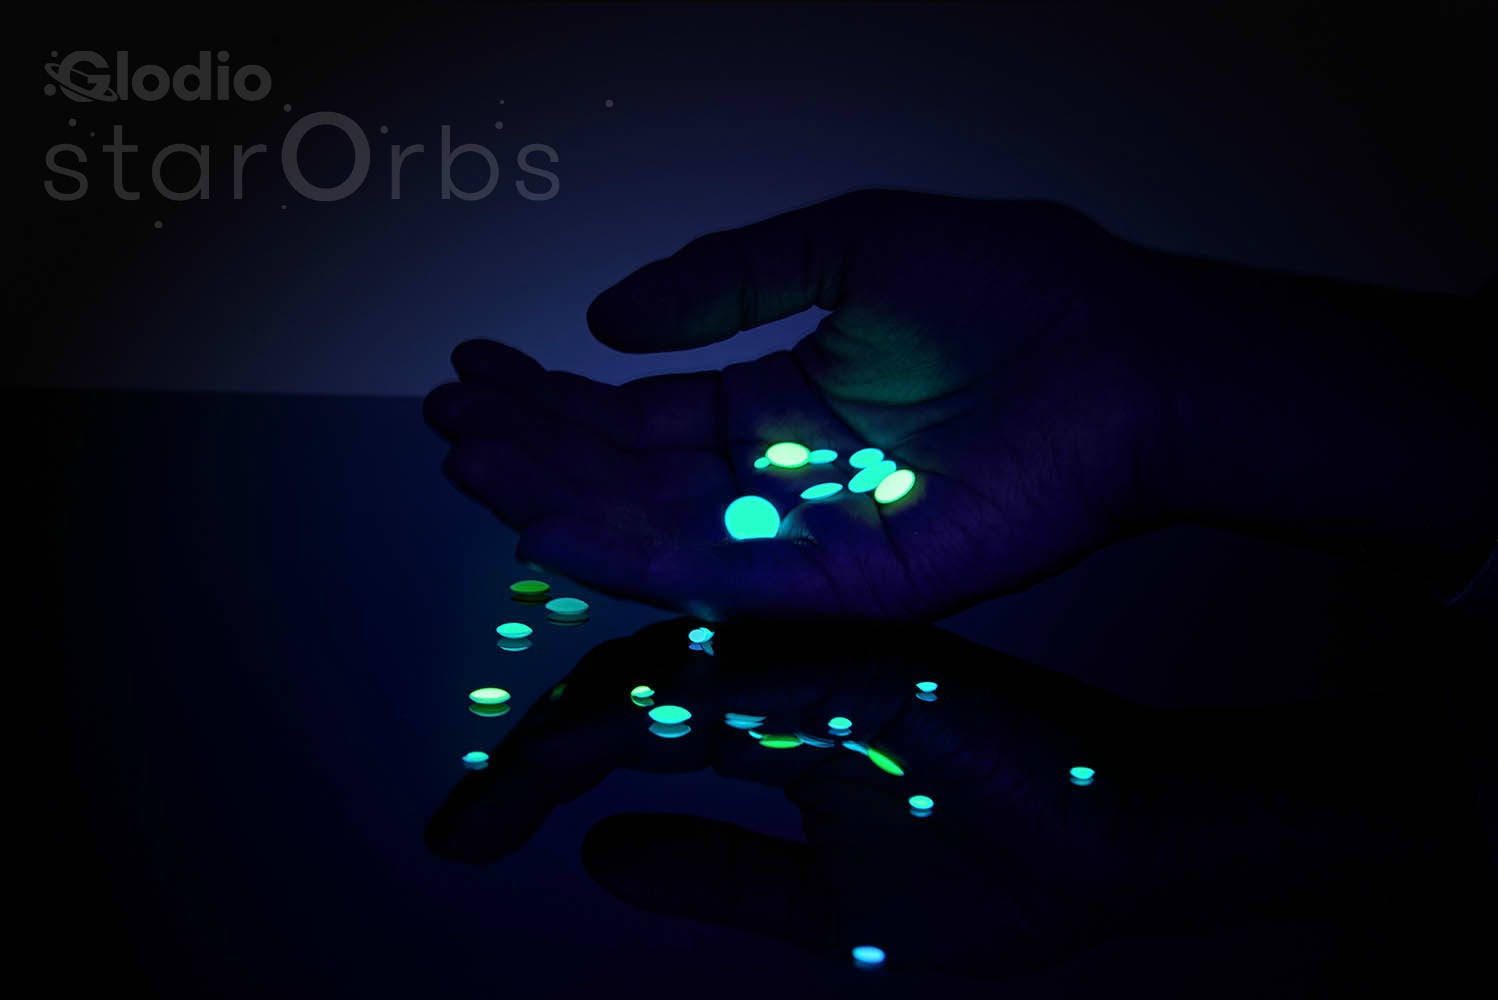 3D Domed Glow In The Dark Realistic Star Stickers, Star